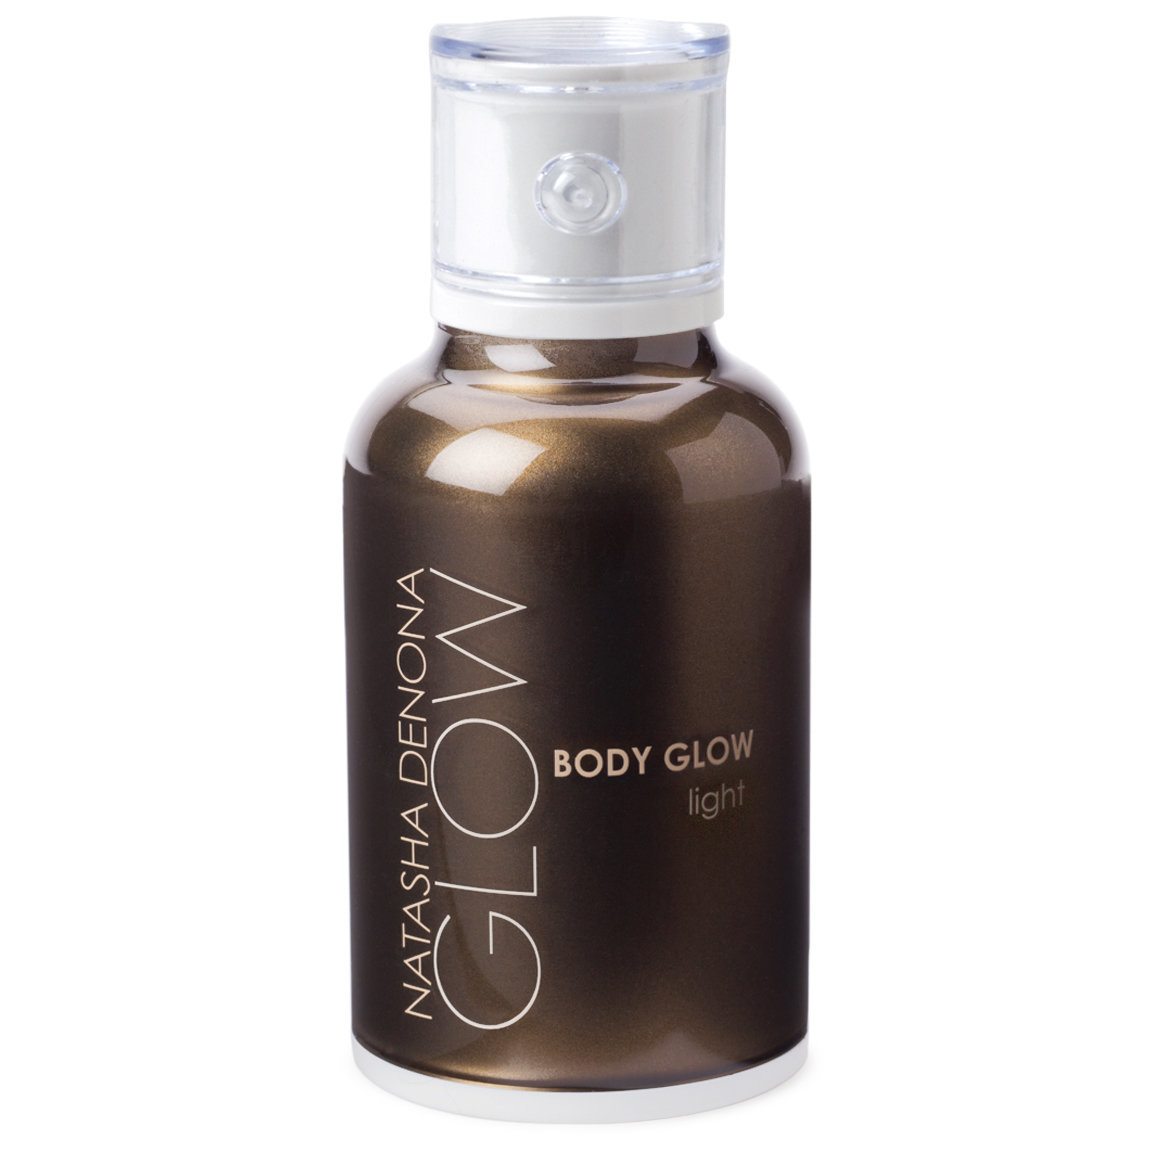 Natasha Denona Body Glow 01 Light